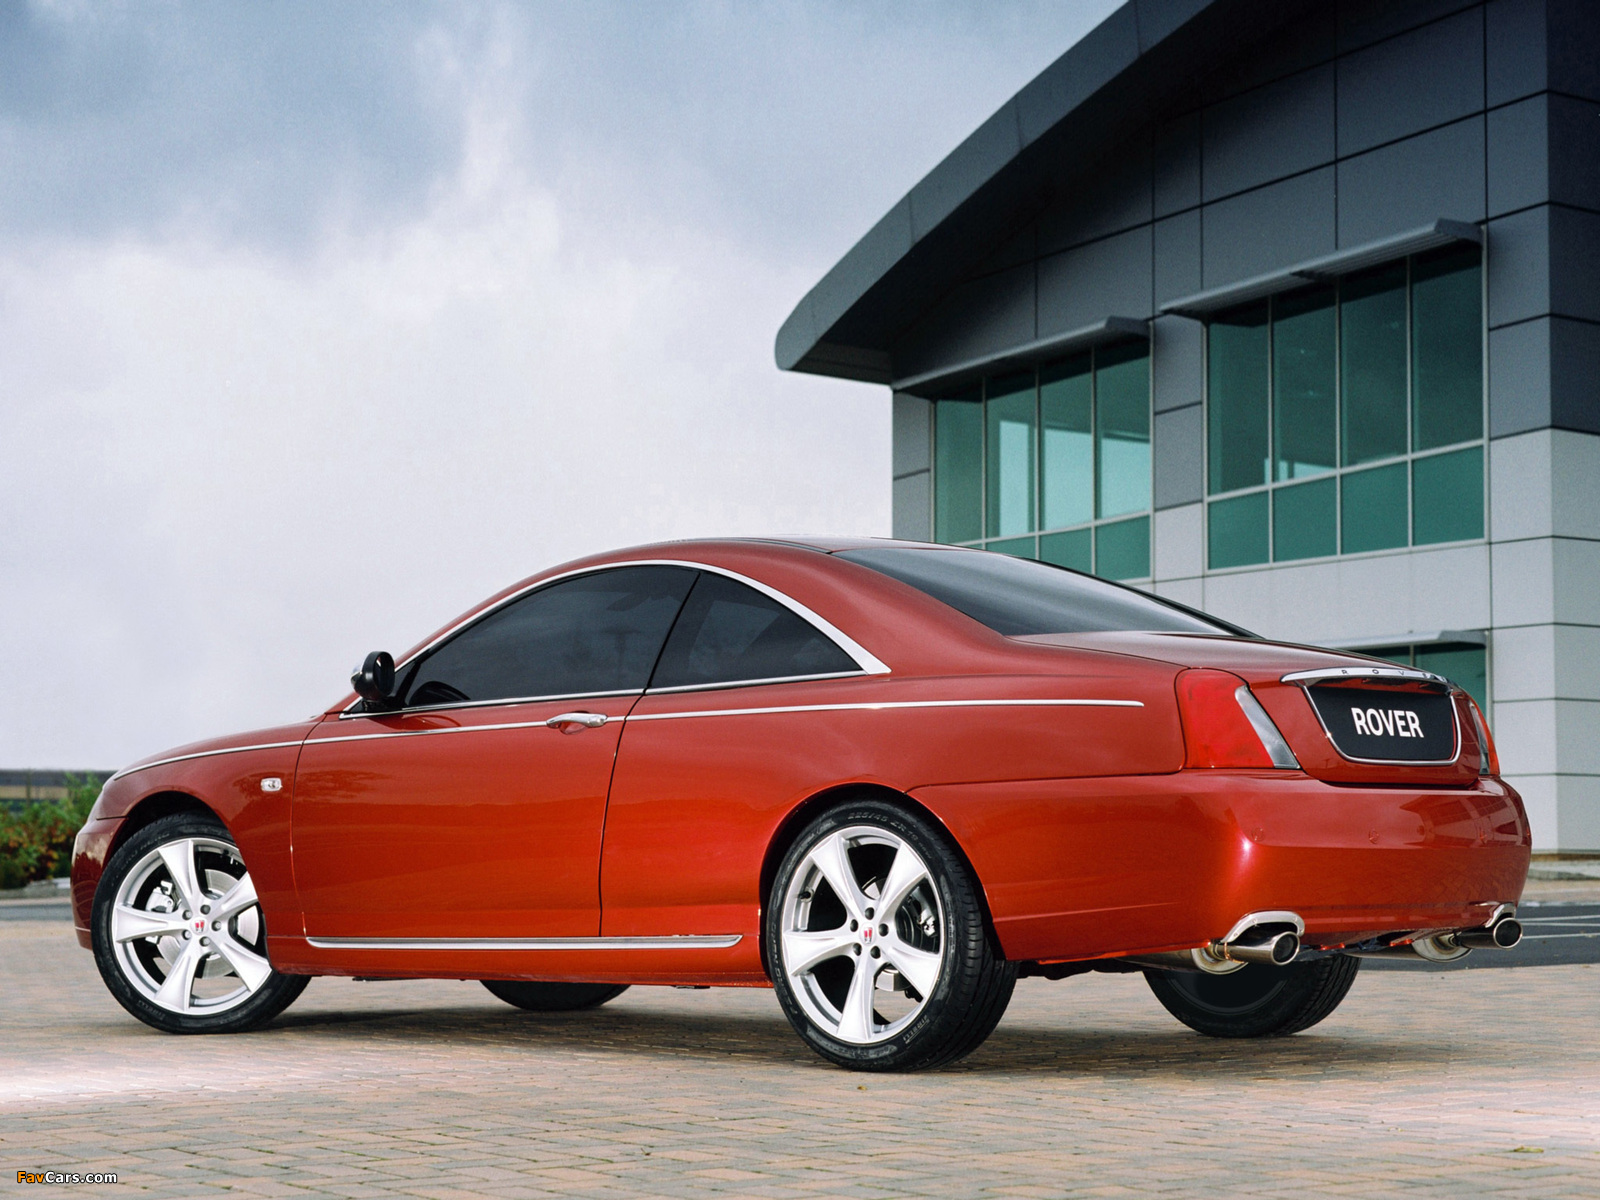 Rover 75 Coupe Concept 2004 images (1600 x 1200)